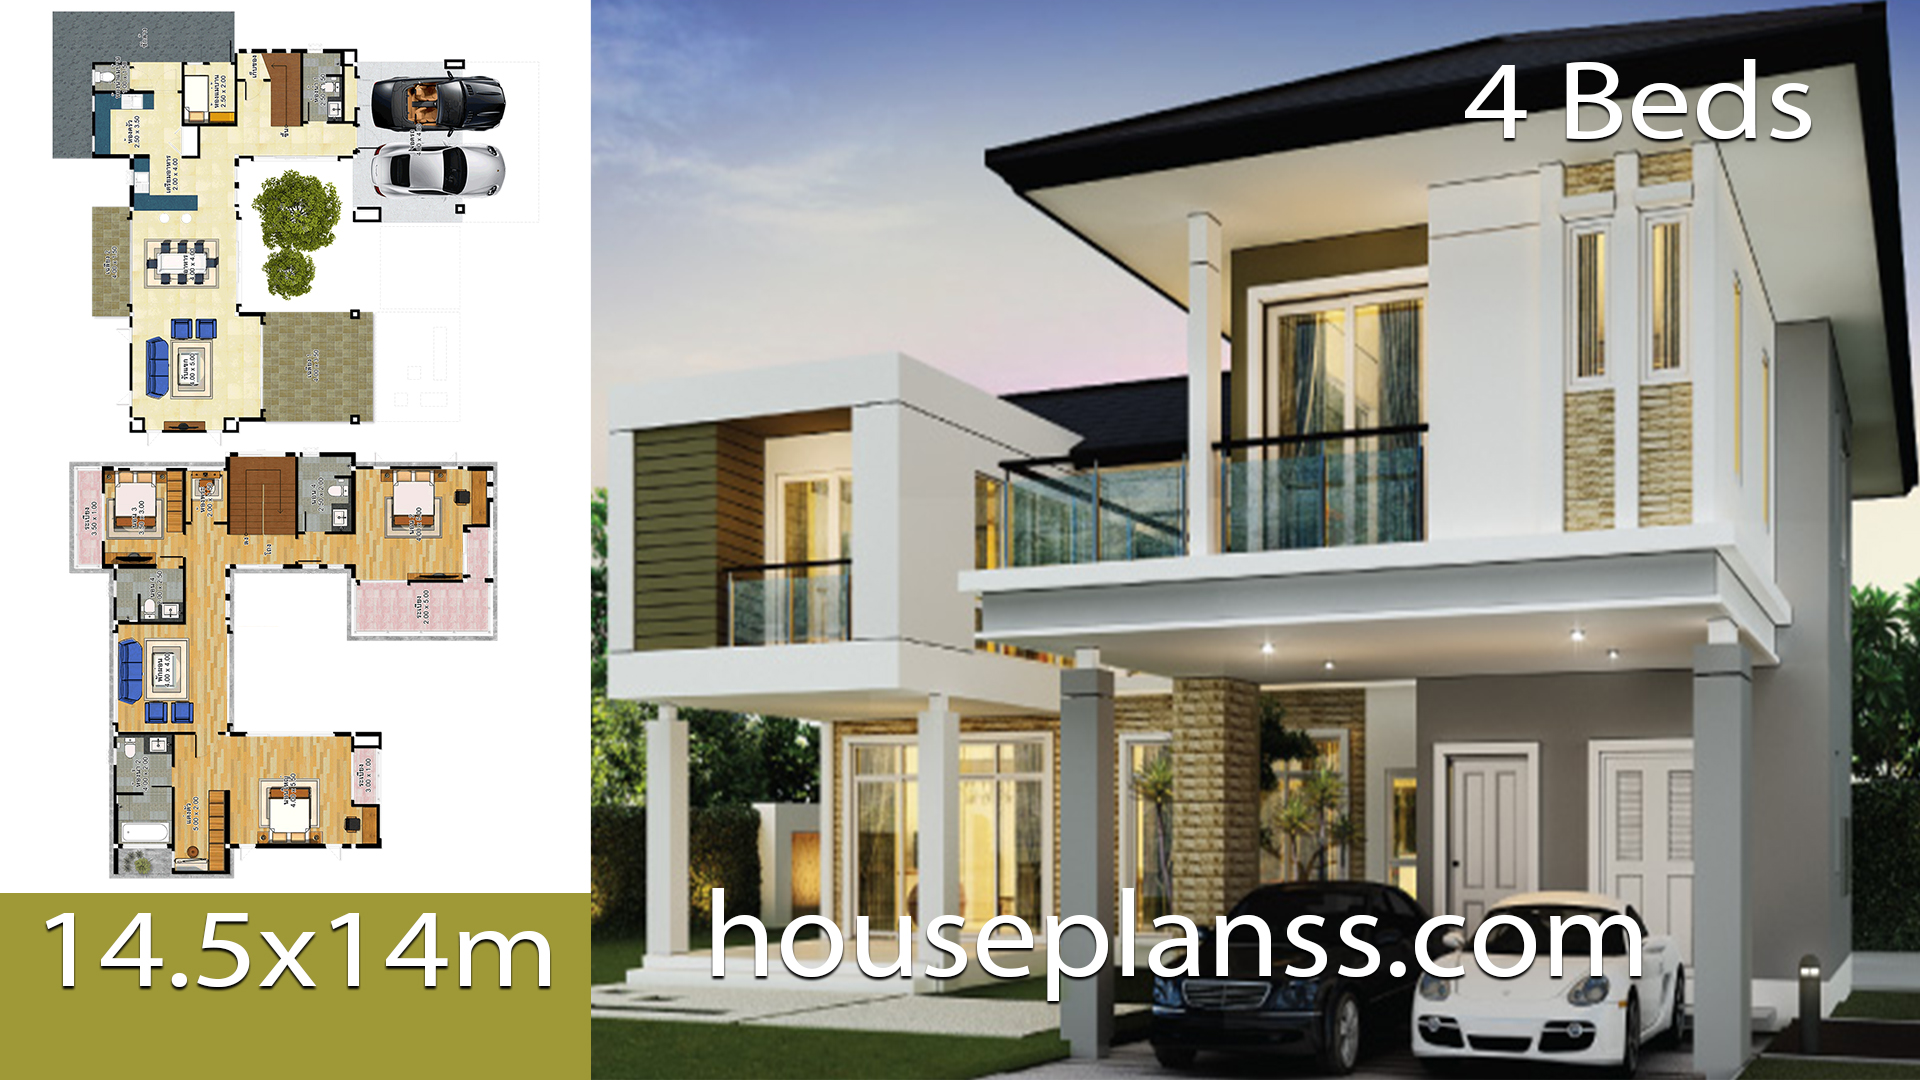 House design idea 14.5×14 with 4 bedrooms